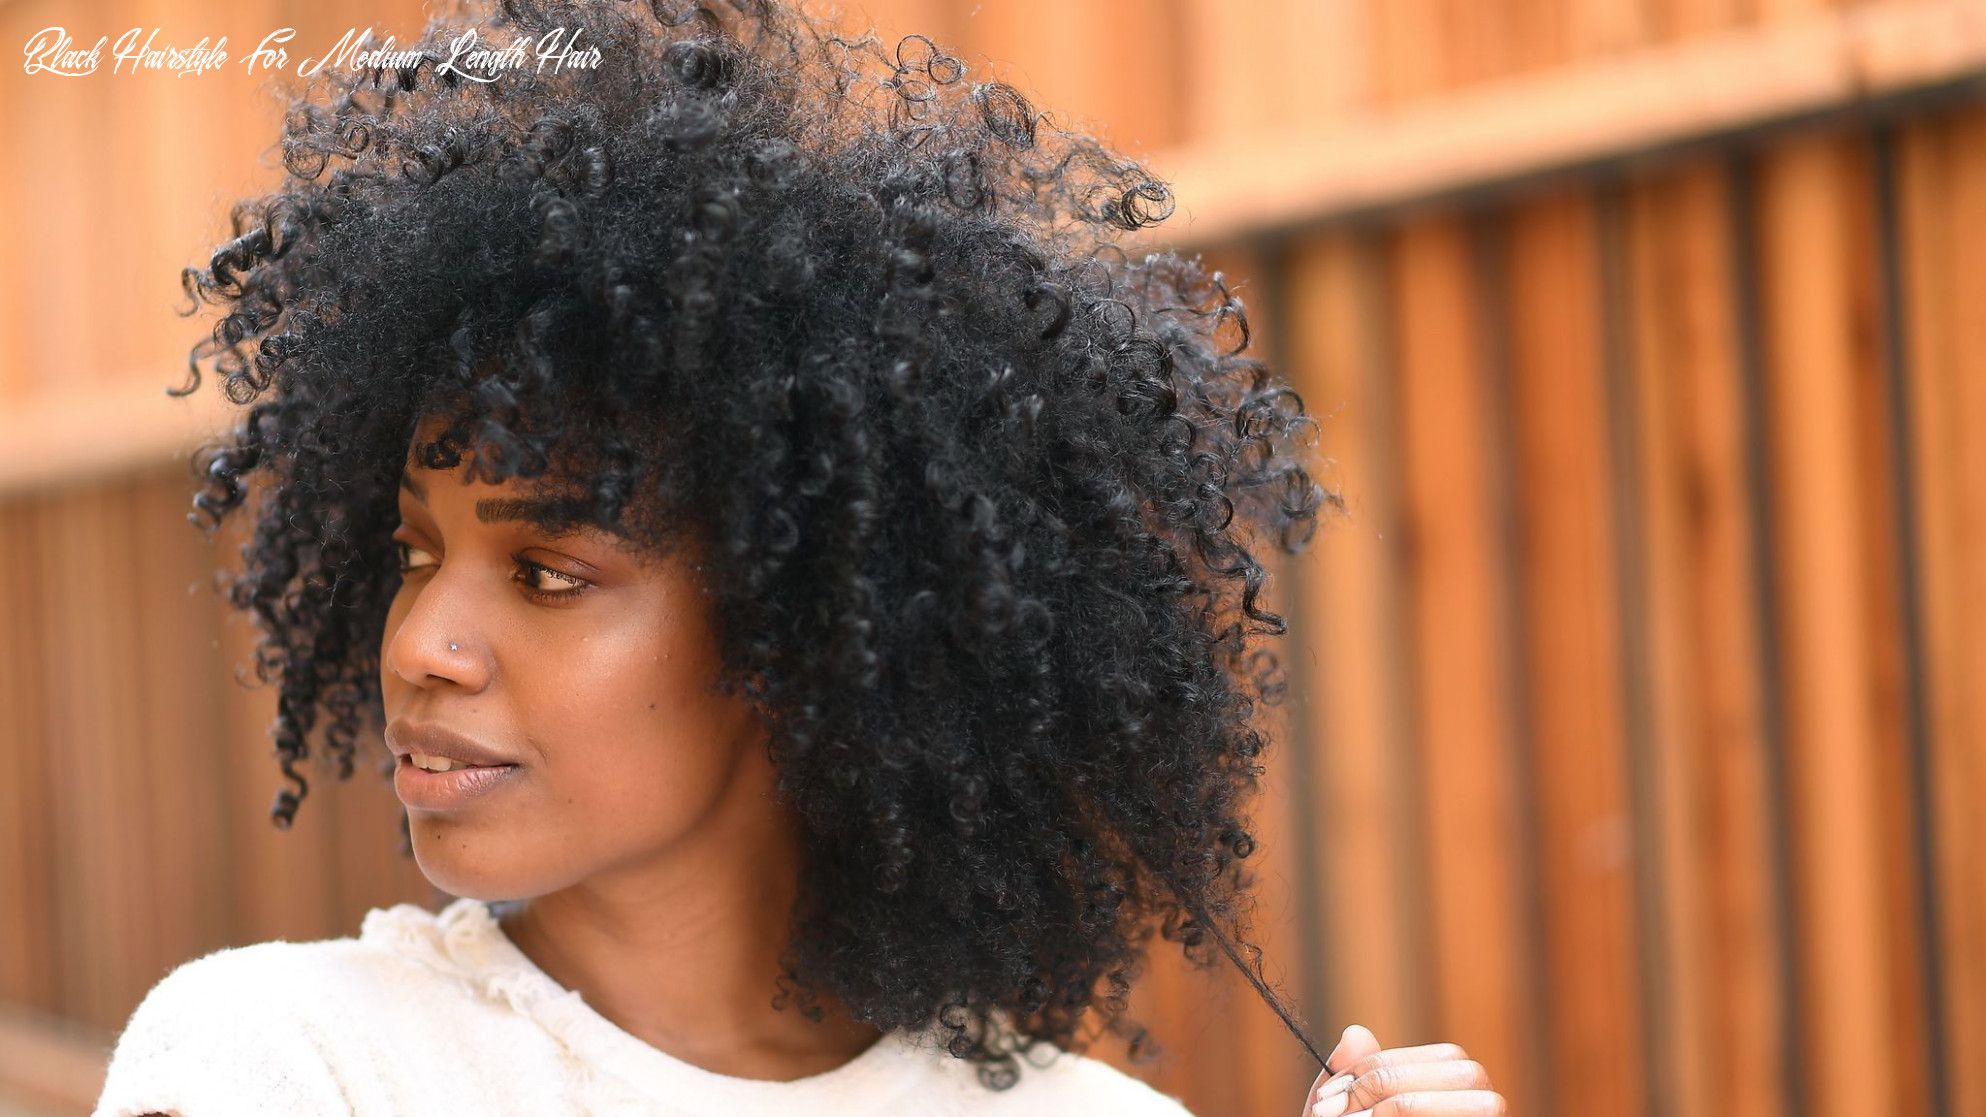 African american natural hairstyles for medium length hair black hairstyle for medium length hair